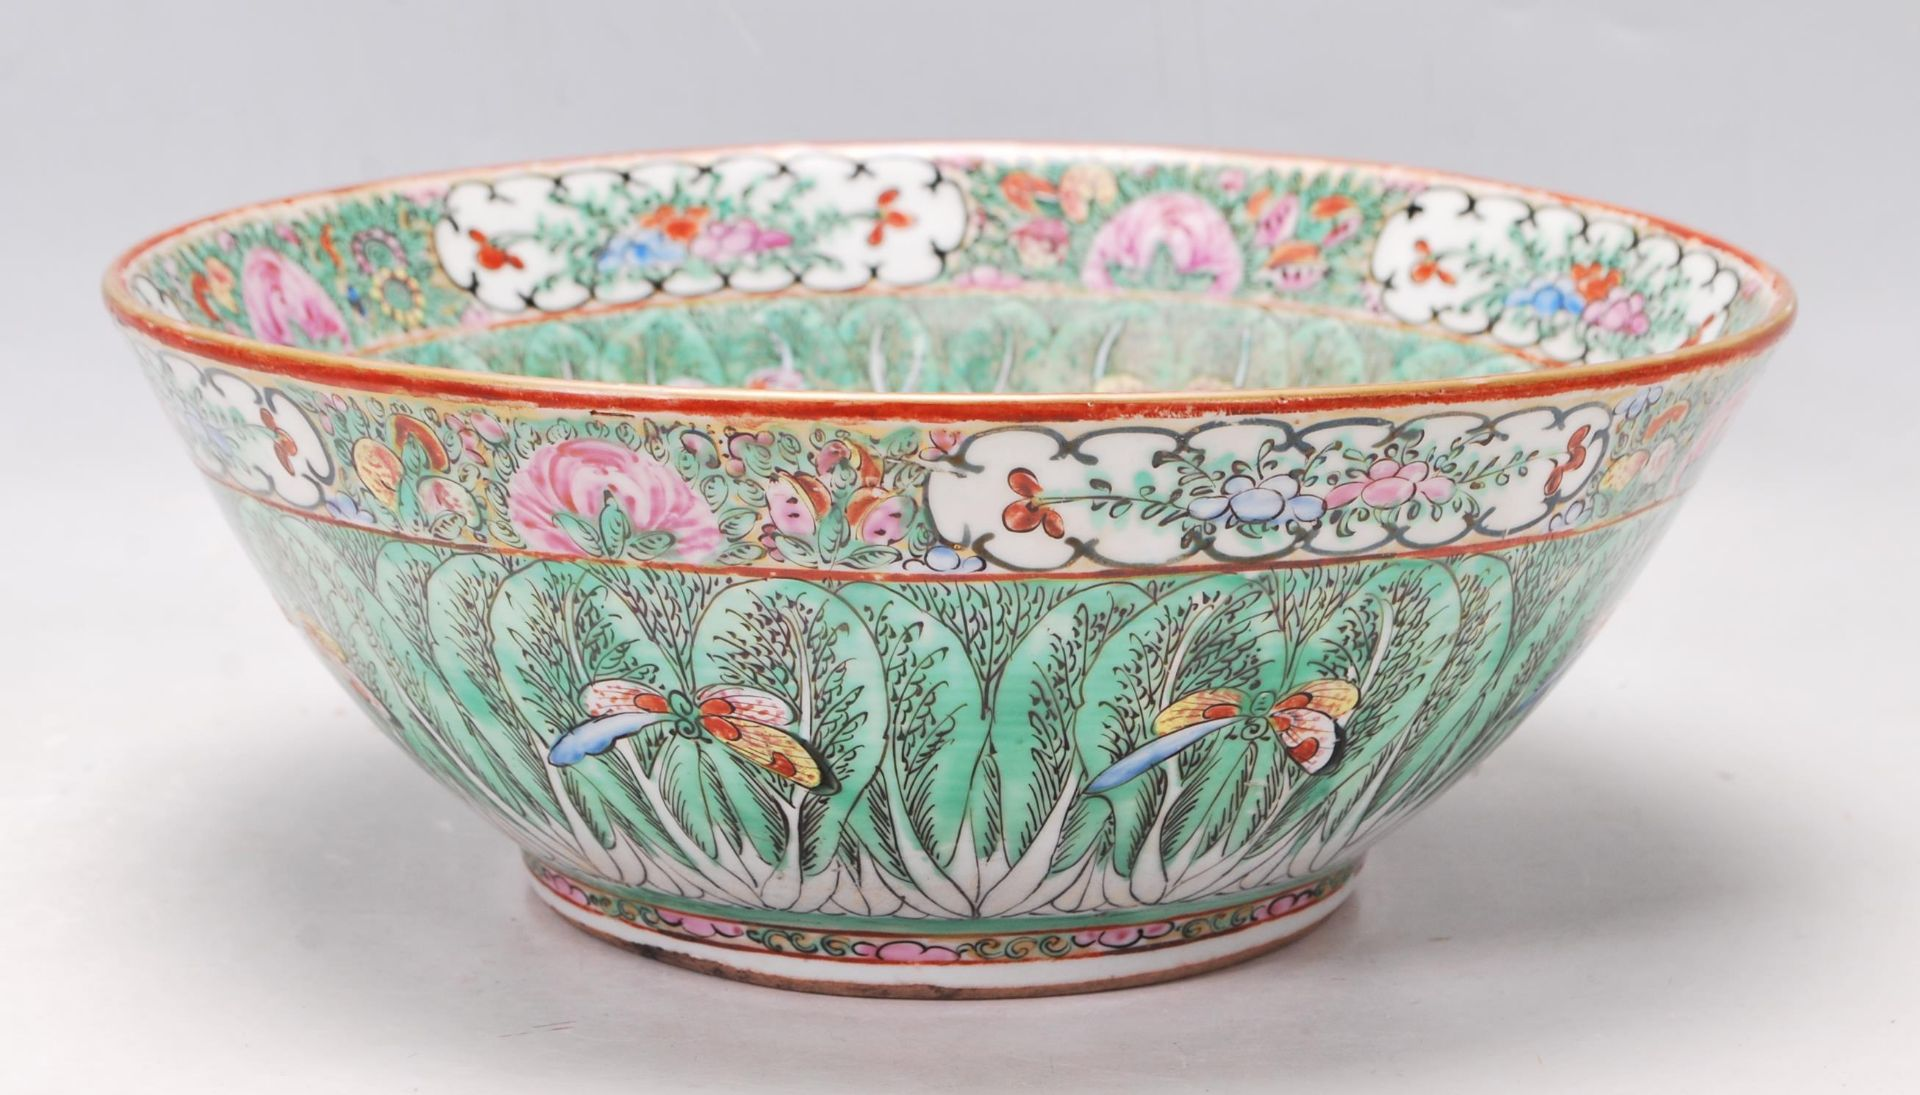 19TH CENTURY CHINESE ORIENTAL CENTRE PIECE BOWL - Image 2 of 11